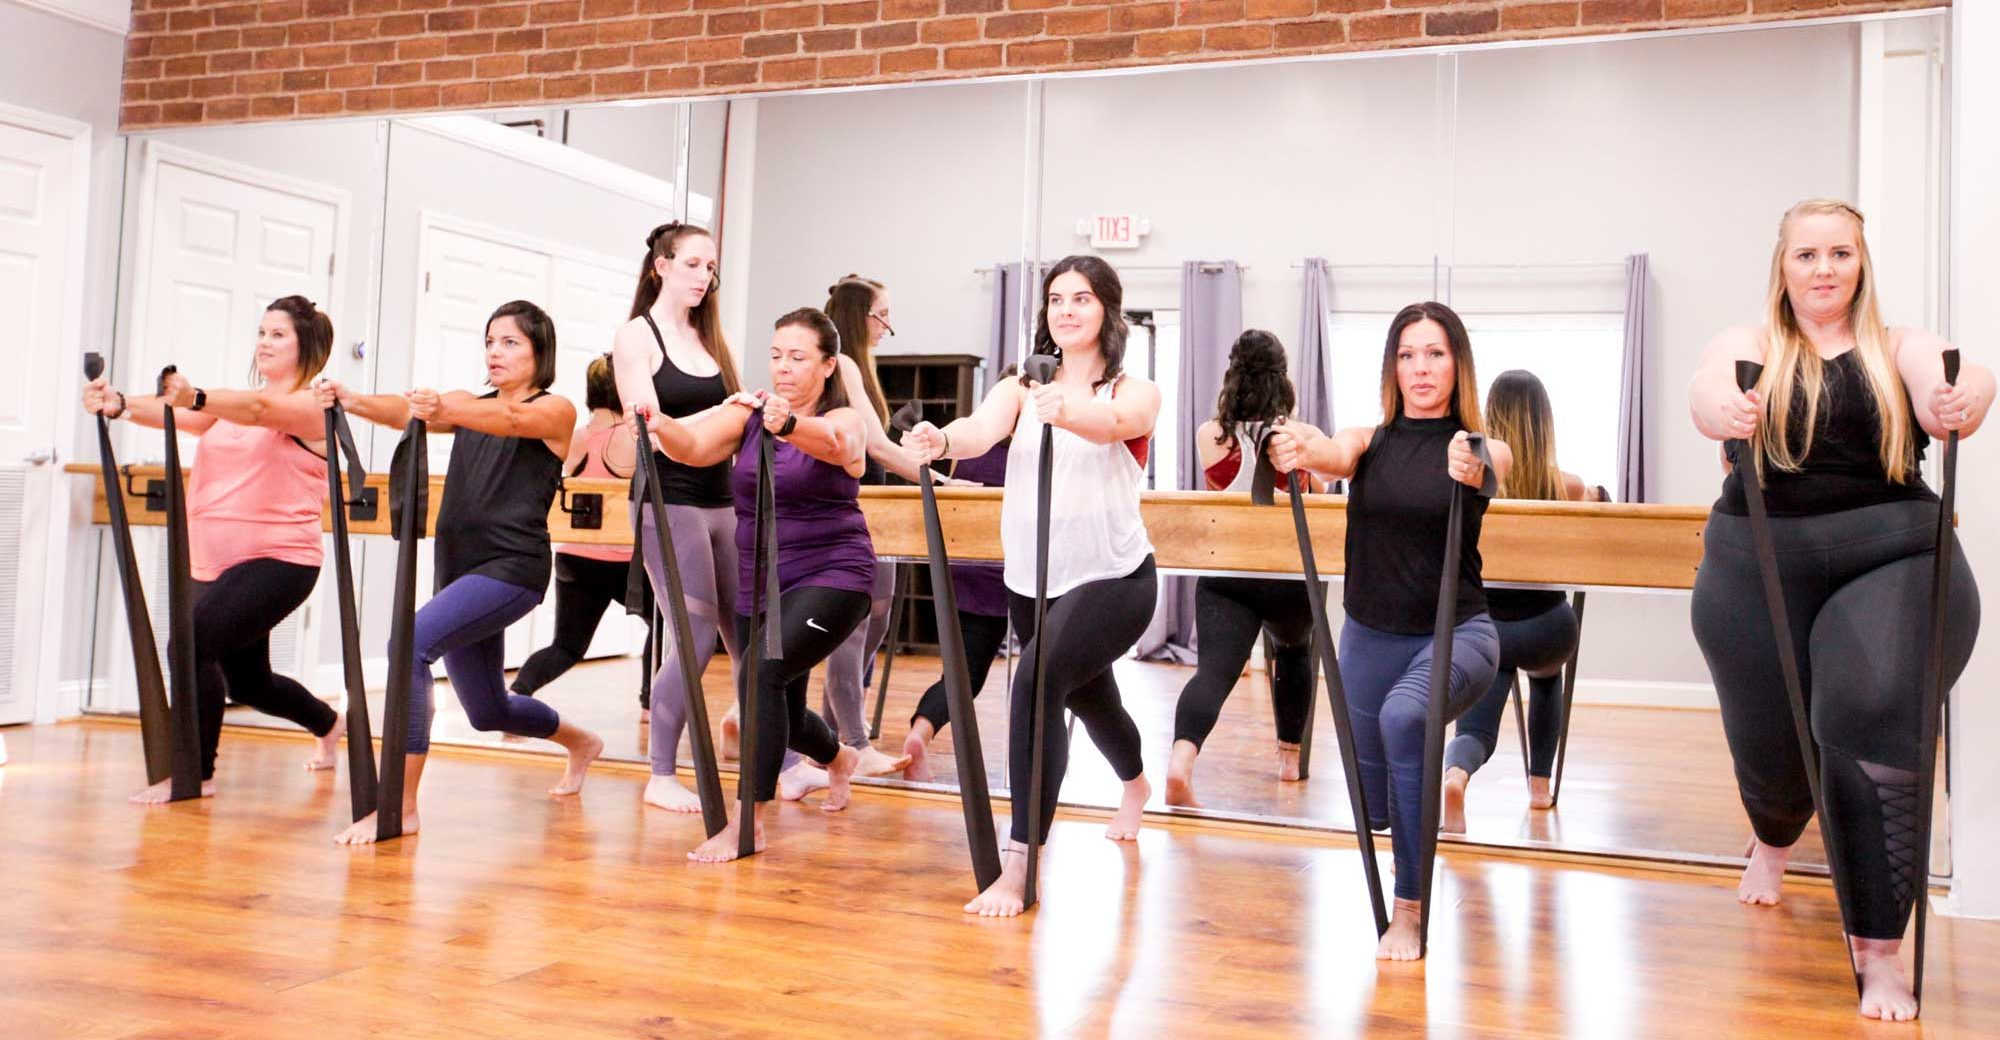 Image is of 6 students exercising by stretching a band. The instructor is standing behind them.